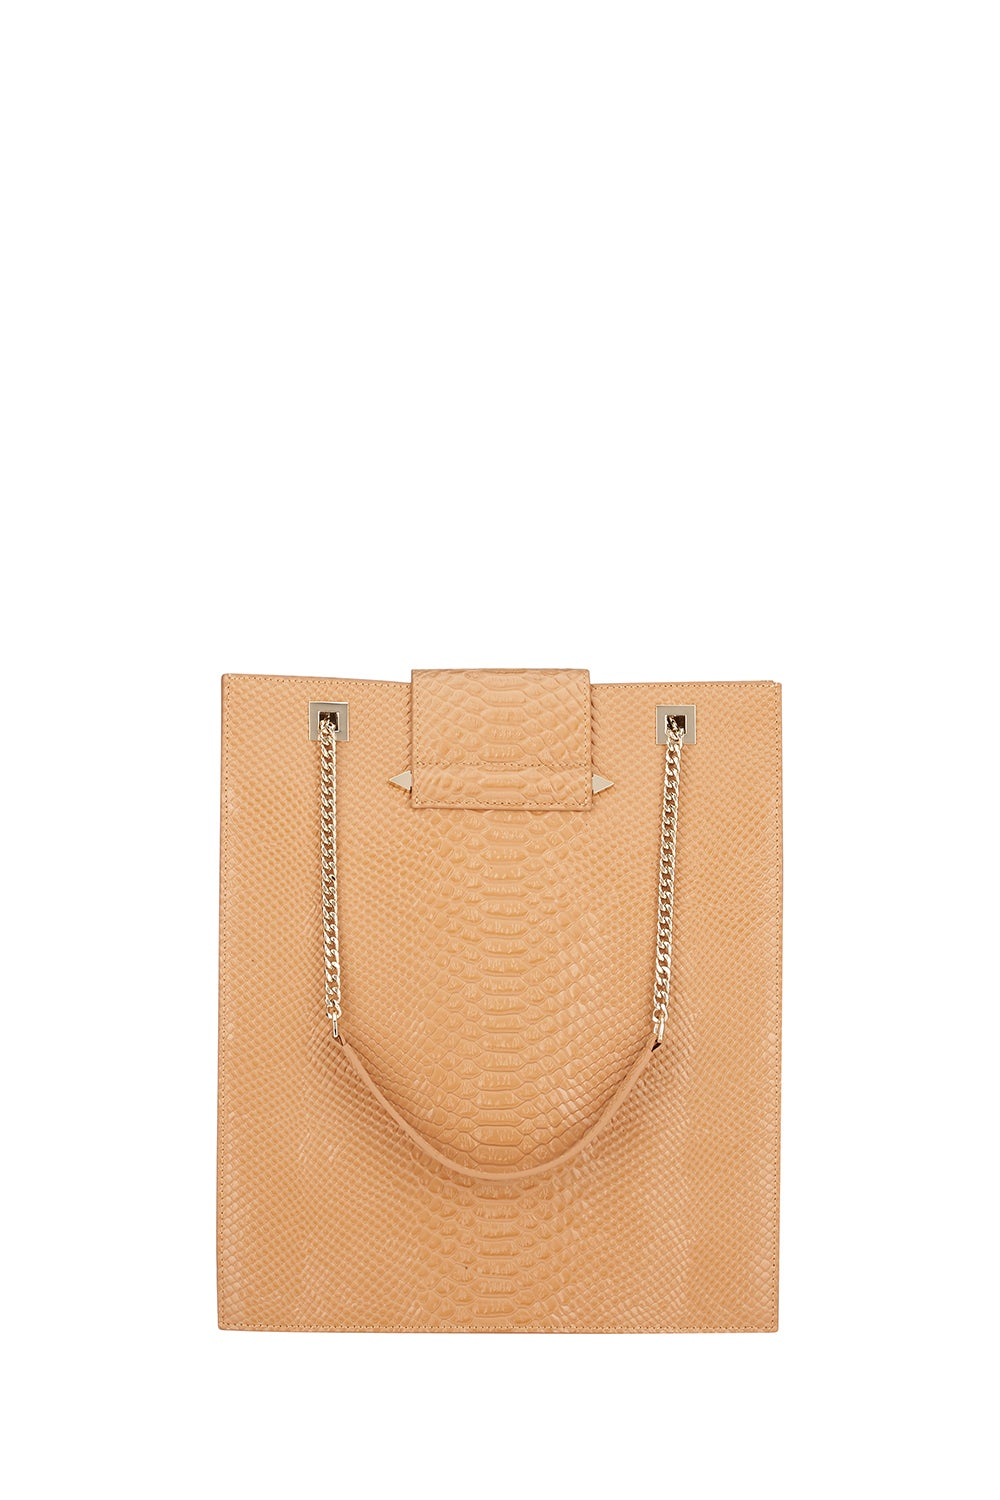 Violet Chain Tote